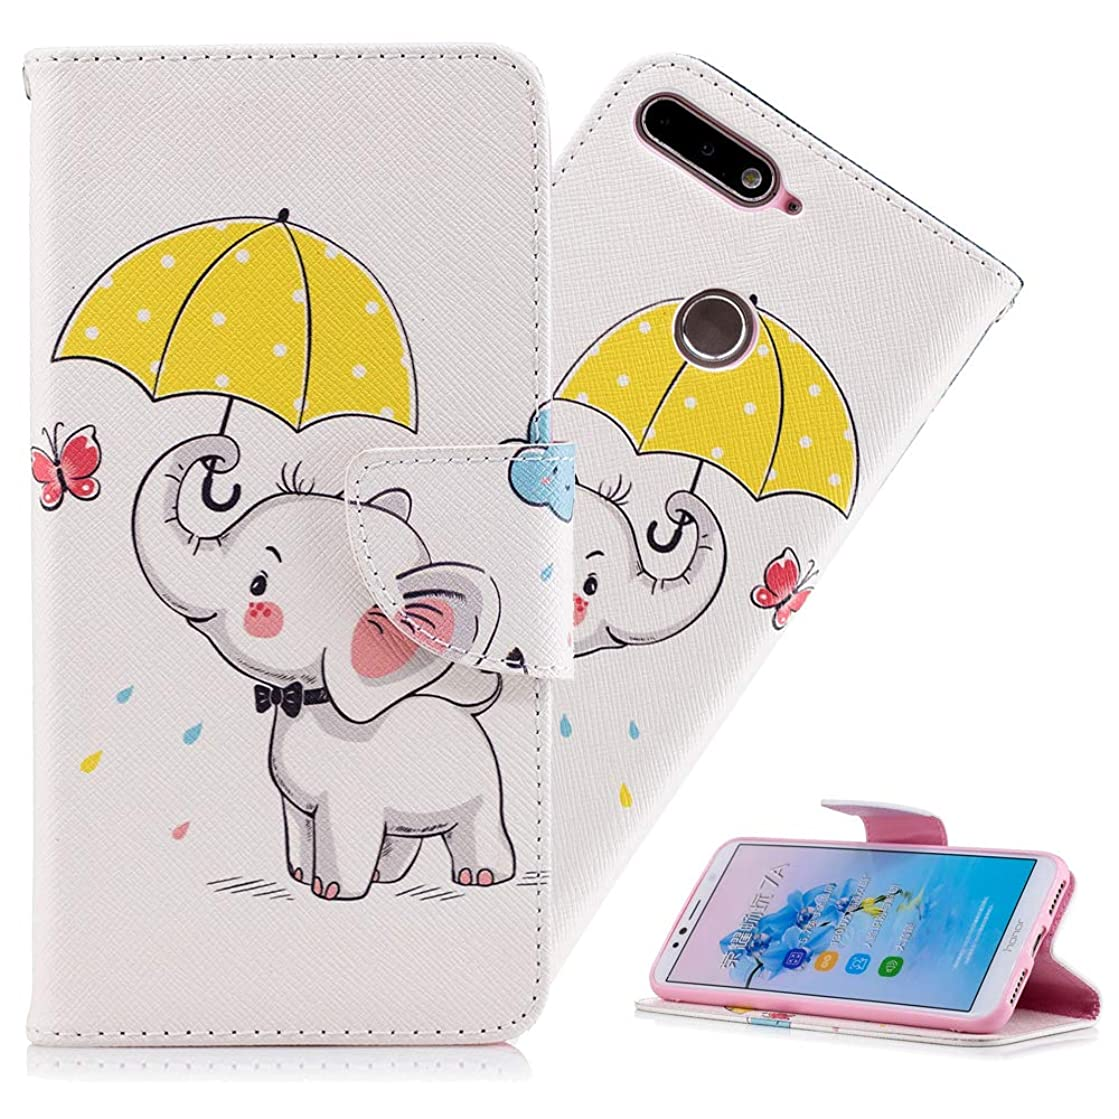 HMTECHUS Huawei Honor 7A Case Design Printing Flamingo Retro Panda Floral Wallet Folio Flip PU Leather with Stand Card Holder Slots Protective Cover for Huawei Y6 2018 Umbrella Dumbo BF